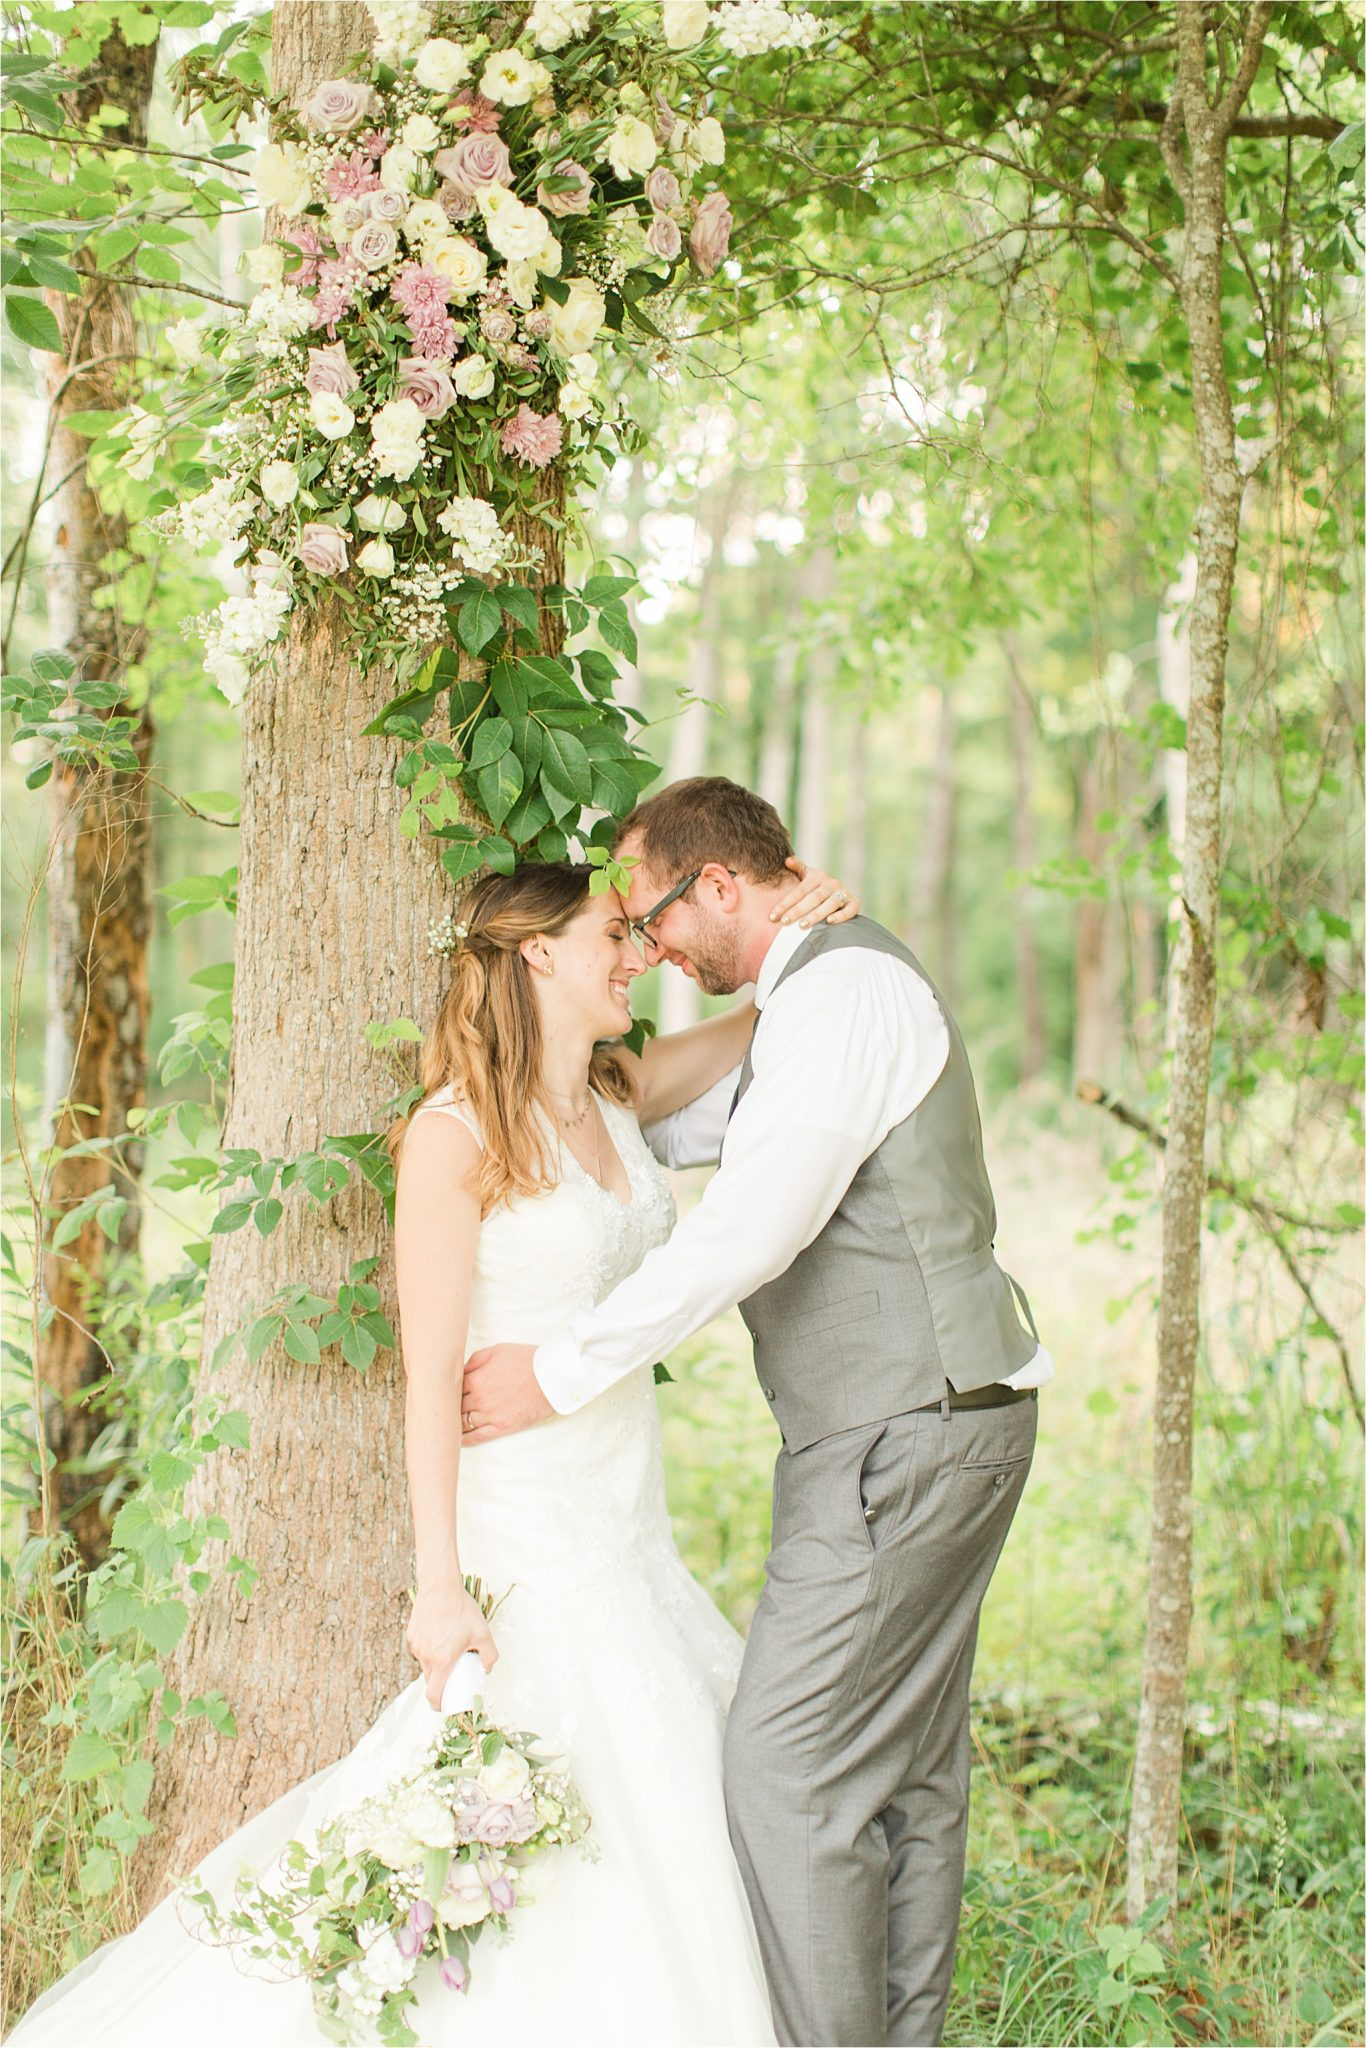 decorate trees with wedding flowers-bride and groom portraits-wedding day-grey grooms suit-vest-lavender flowers